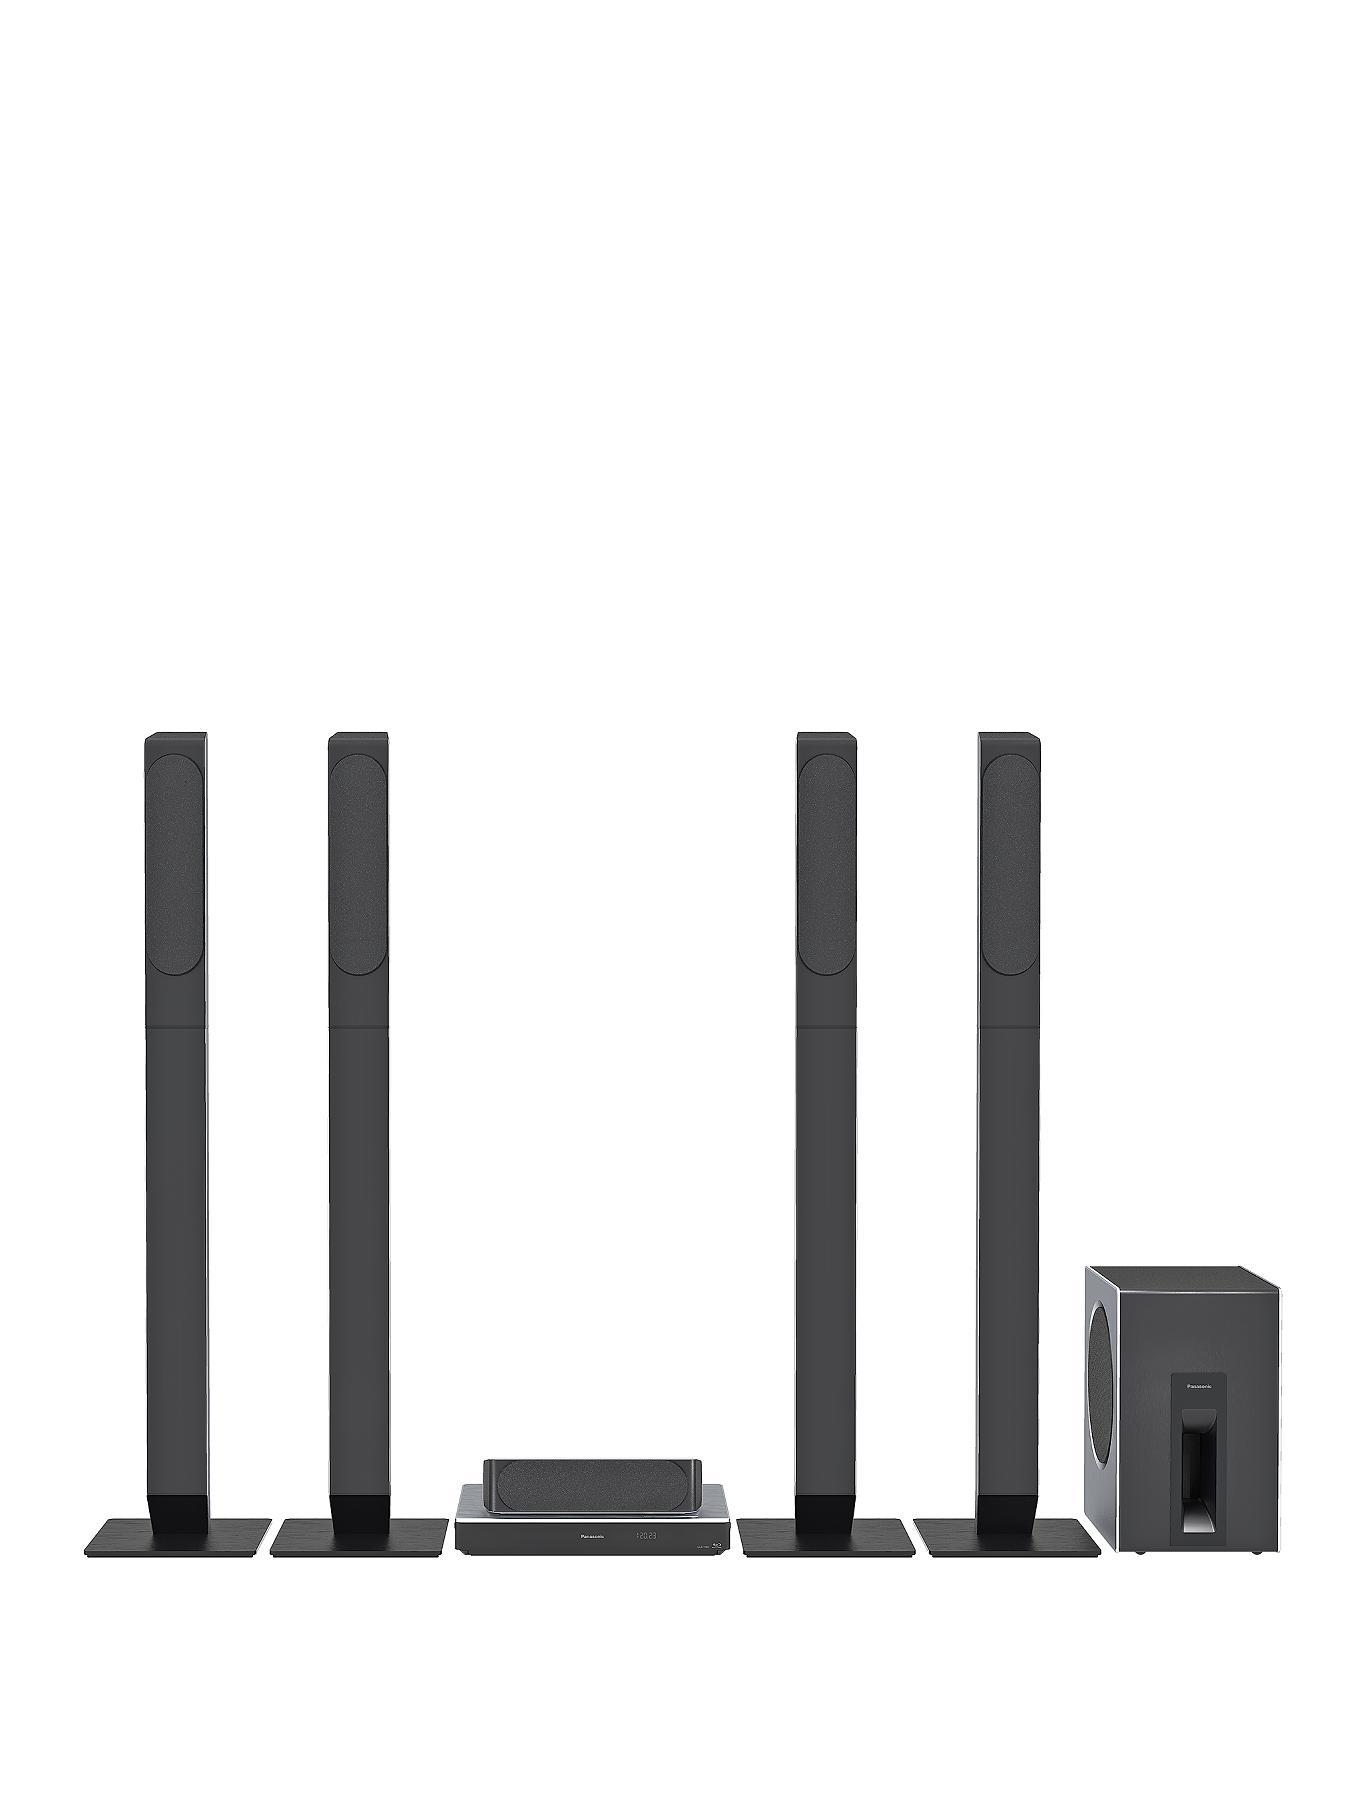 Panasonic SC-BT885 5.1 3D Smart Blu-ray Home Cinema with Built-in Wi-Fi and 4K UHD Upscaling